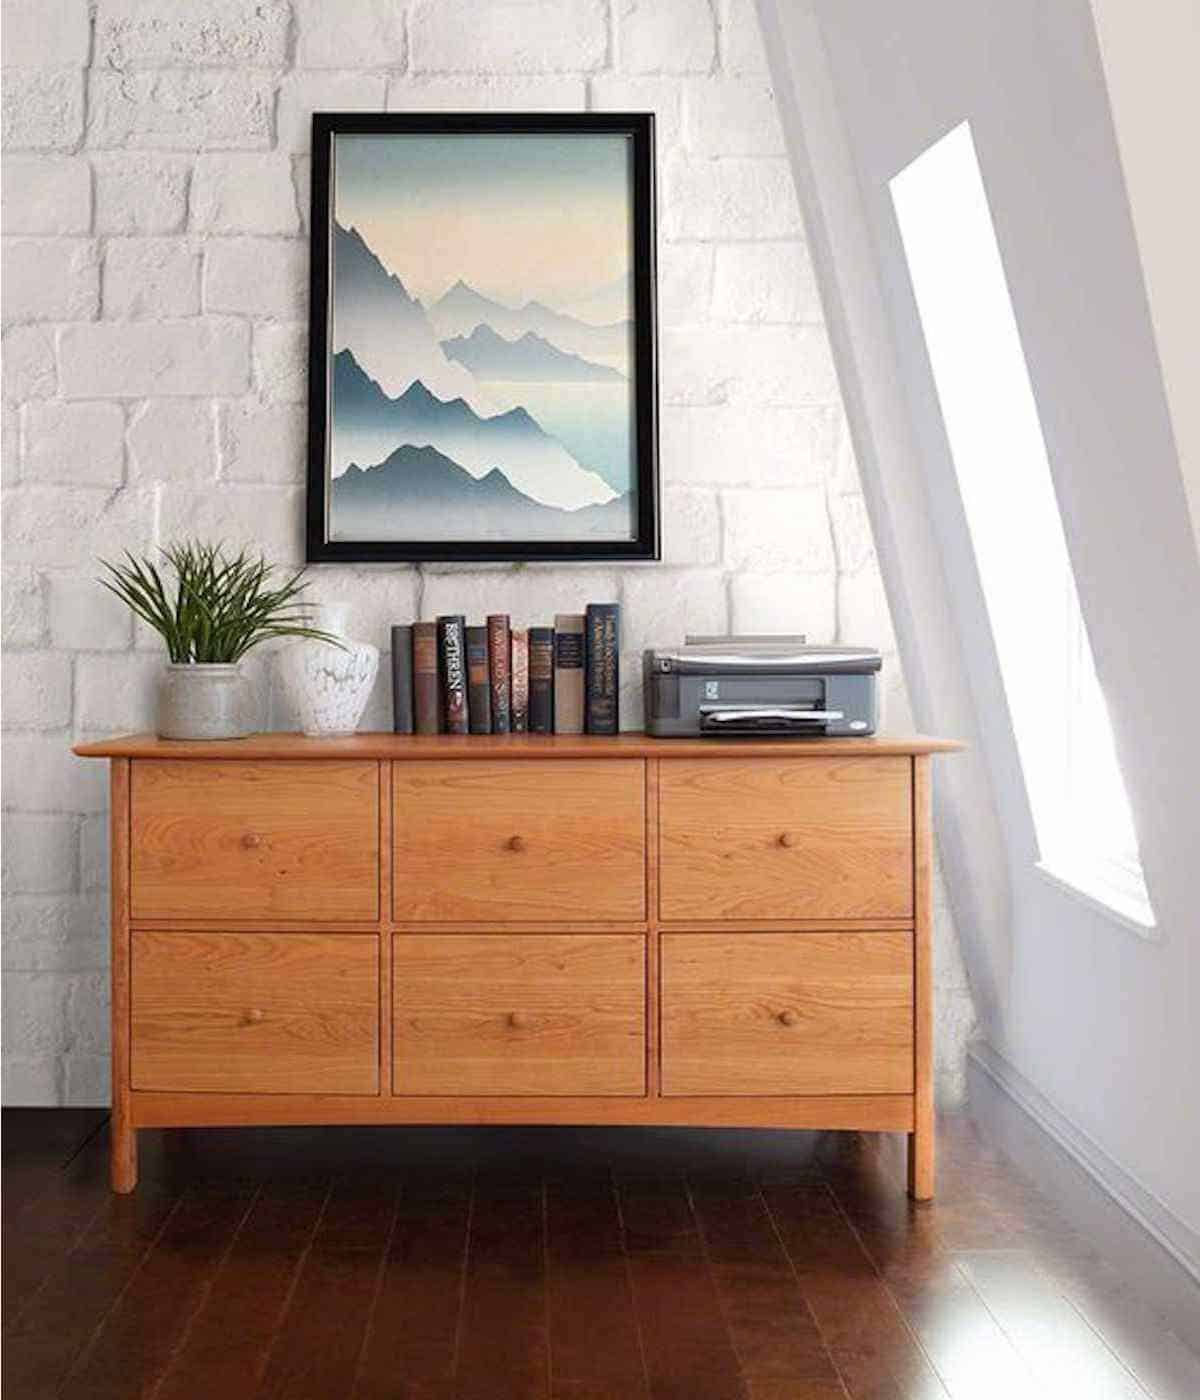 Shopping for Sustainable Furniture? Here's our list of the most eco friendly brands creating artisan show-pieces for any home… Image by Vermont Wood Studios #sustainablefurniture #ecofriendlyfurniture